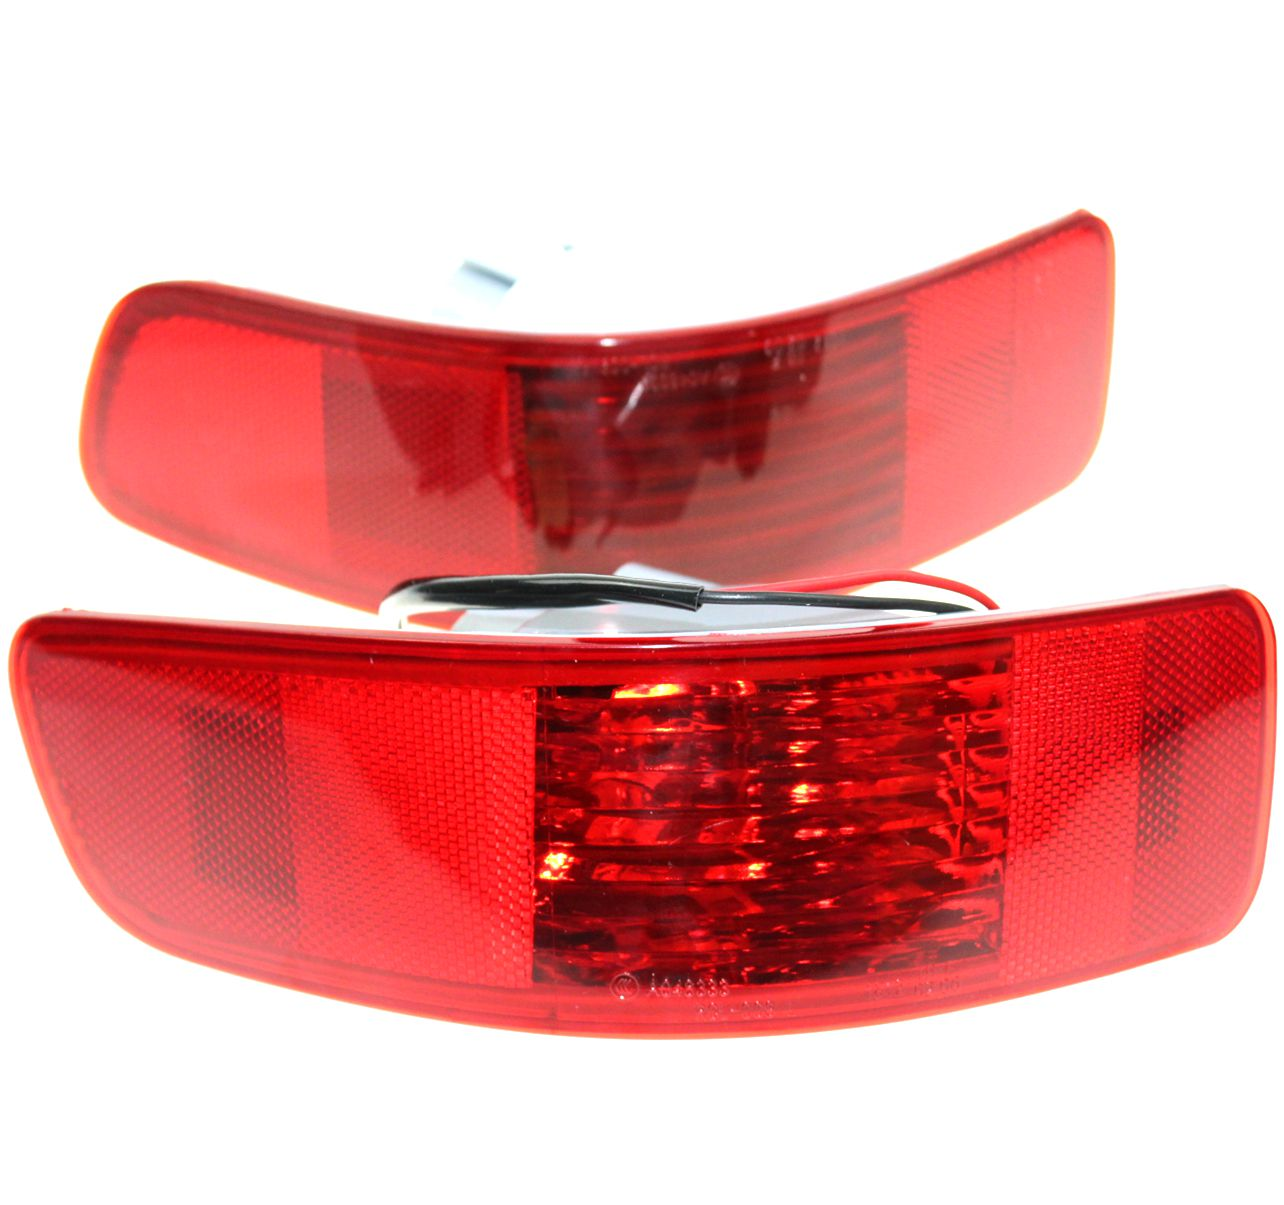 LARATH Pair Rear Bumper Right Left Tail Fog Light Lamp Fit for Mitsubishi Outlander PEUGEOT 4007 2007-2012 CITROEN C-Crosser new 12v 55w left right front fog lamp light 8321a467 sl870 1 fit for mitsubishi outlander asx rvr